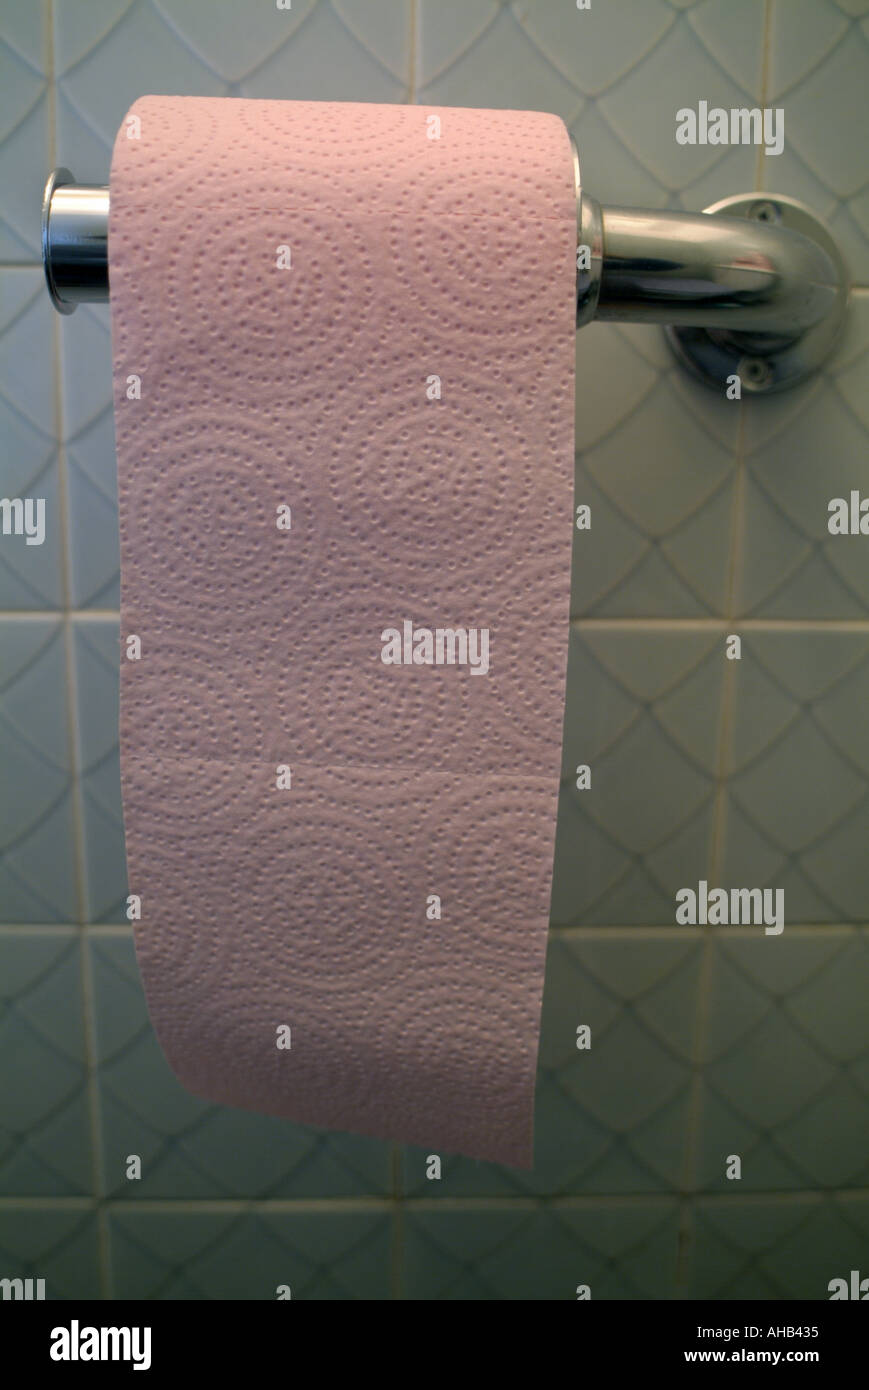 Pink toilet paper roll in the bathroom. - Stock Image